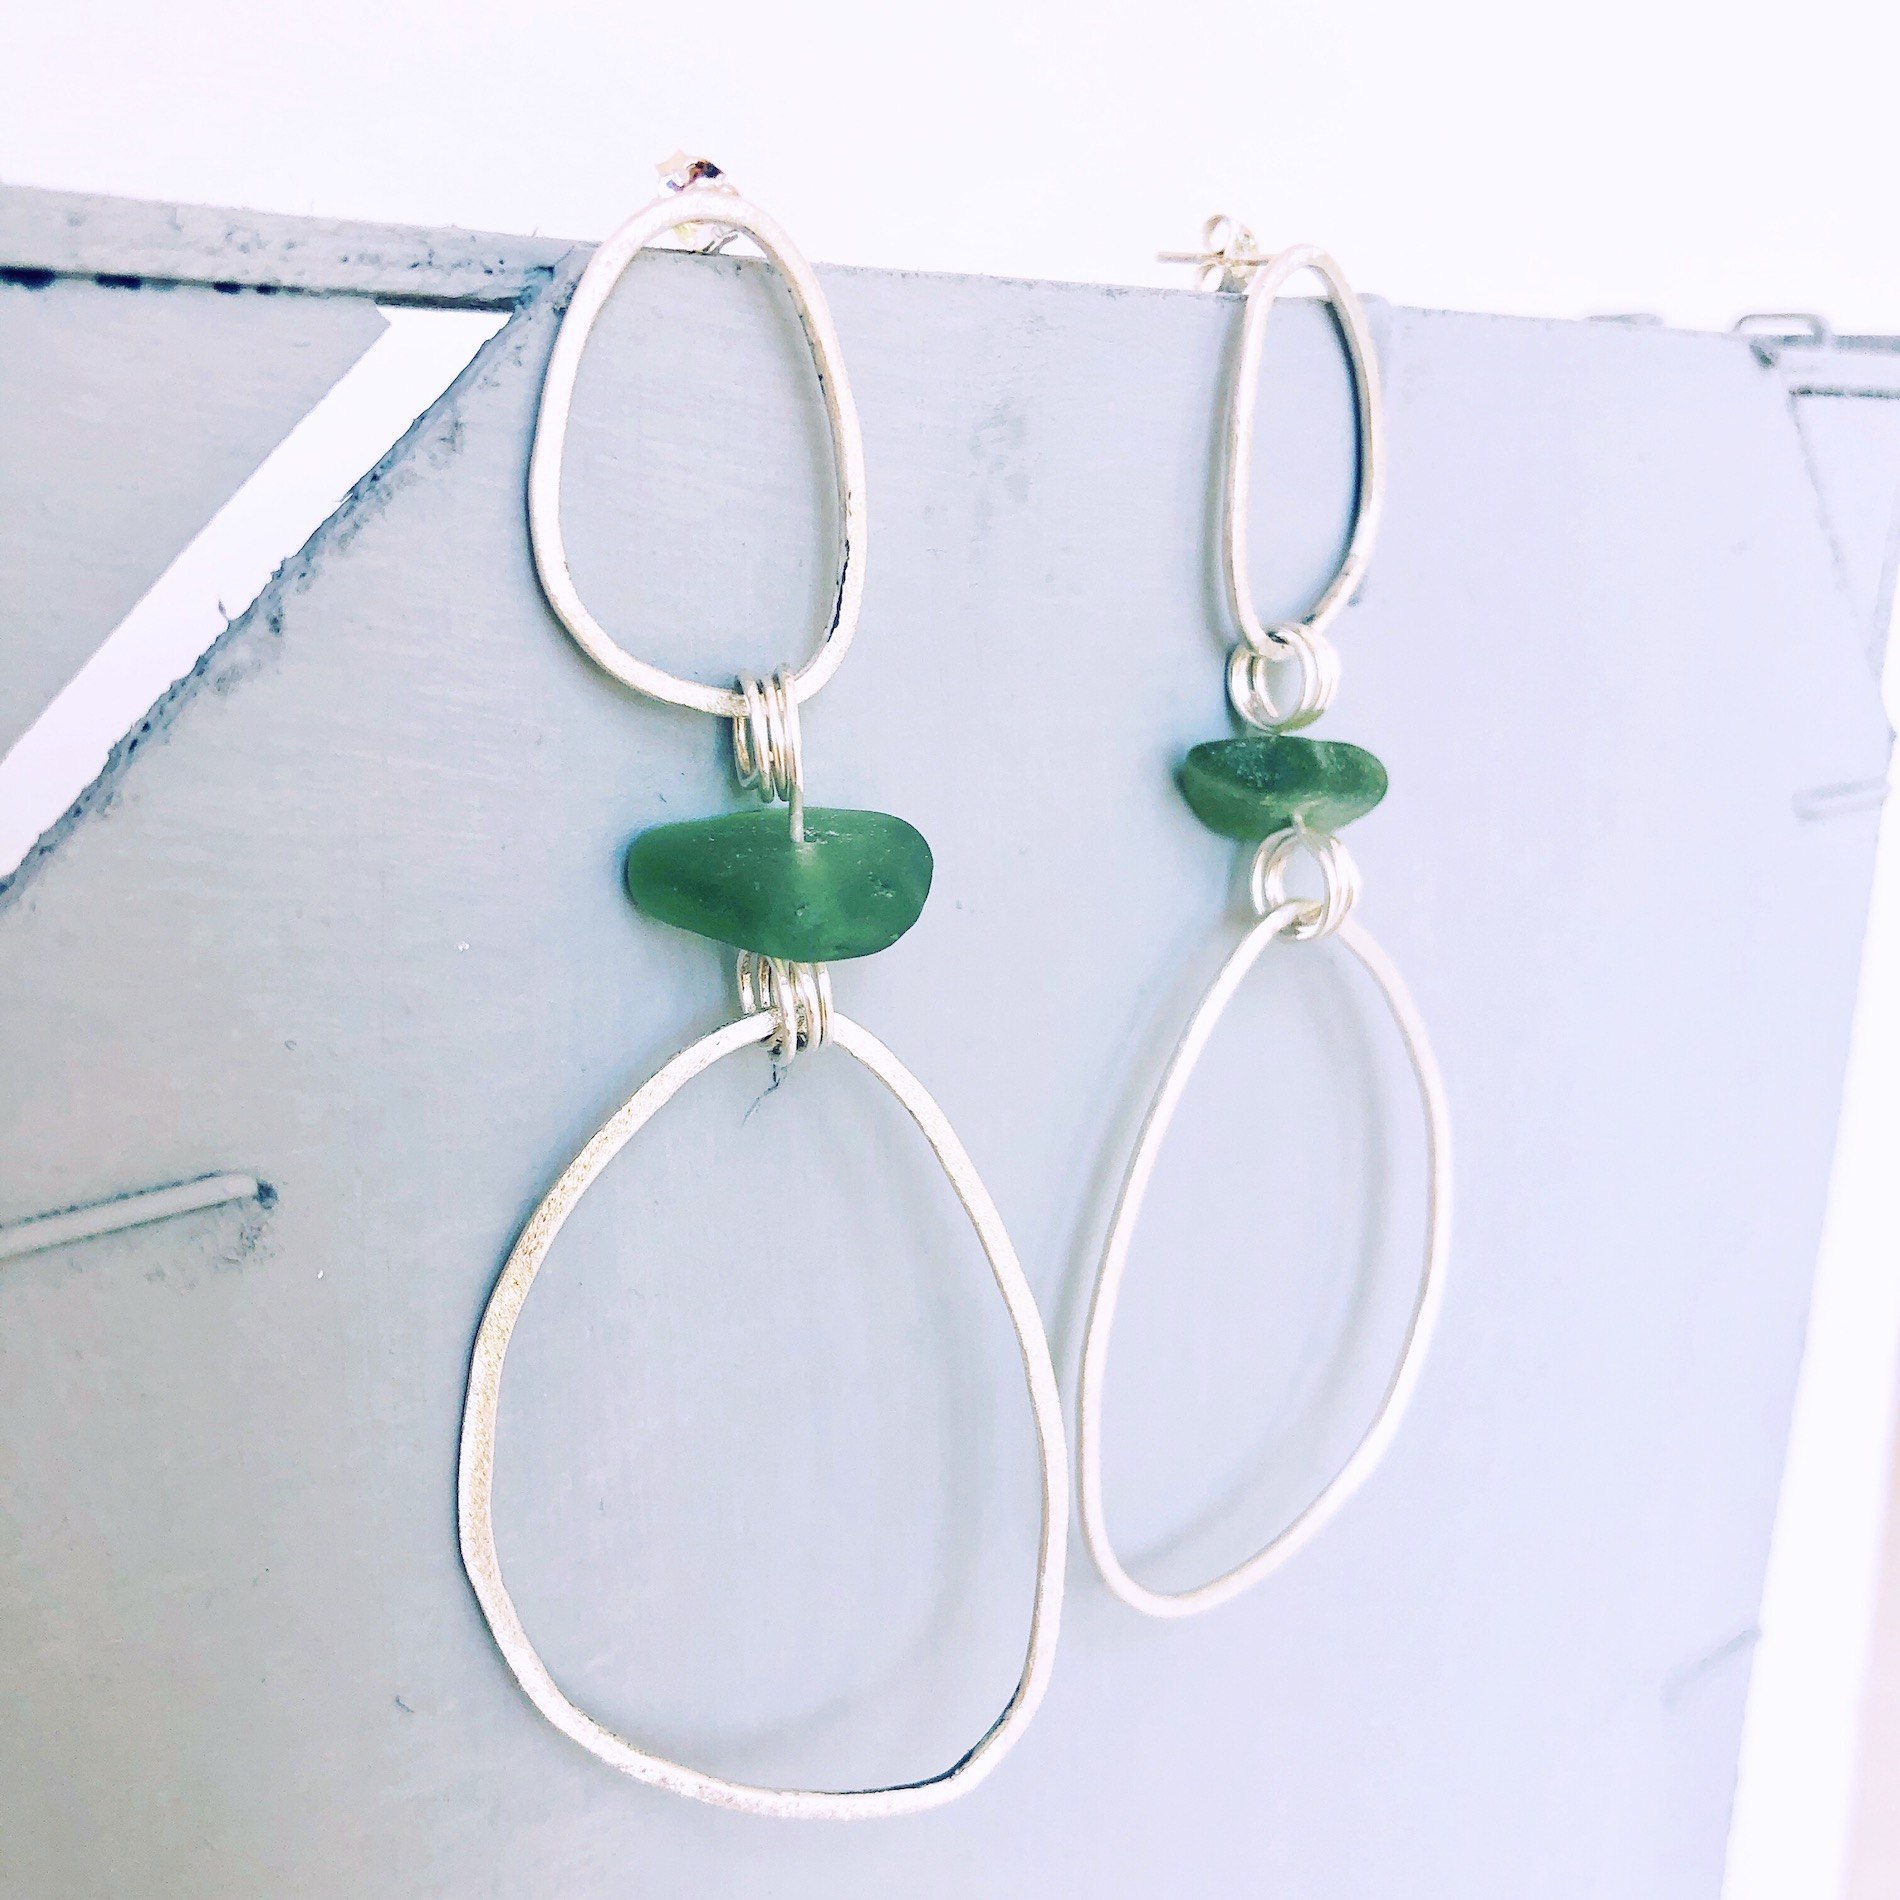 dangling seaglass earrings - • stunning long dangling earrings• sterling silver with a brushed finish• genuine green sea glass from France• SGED3120 Euro